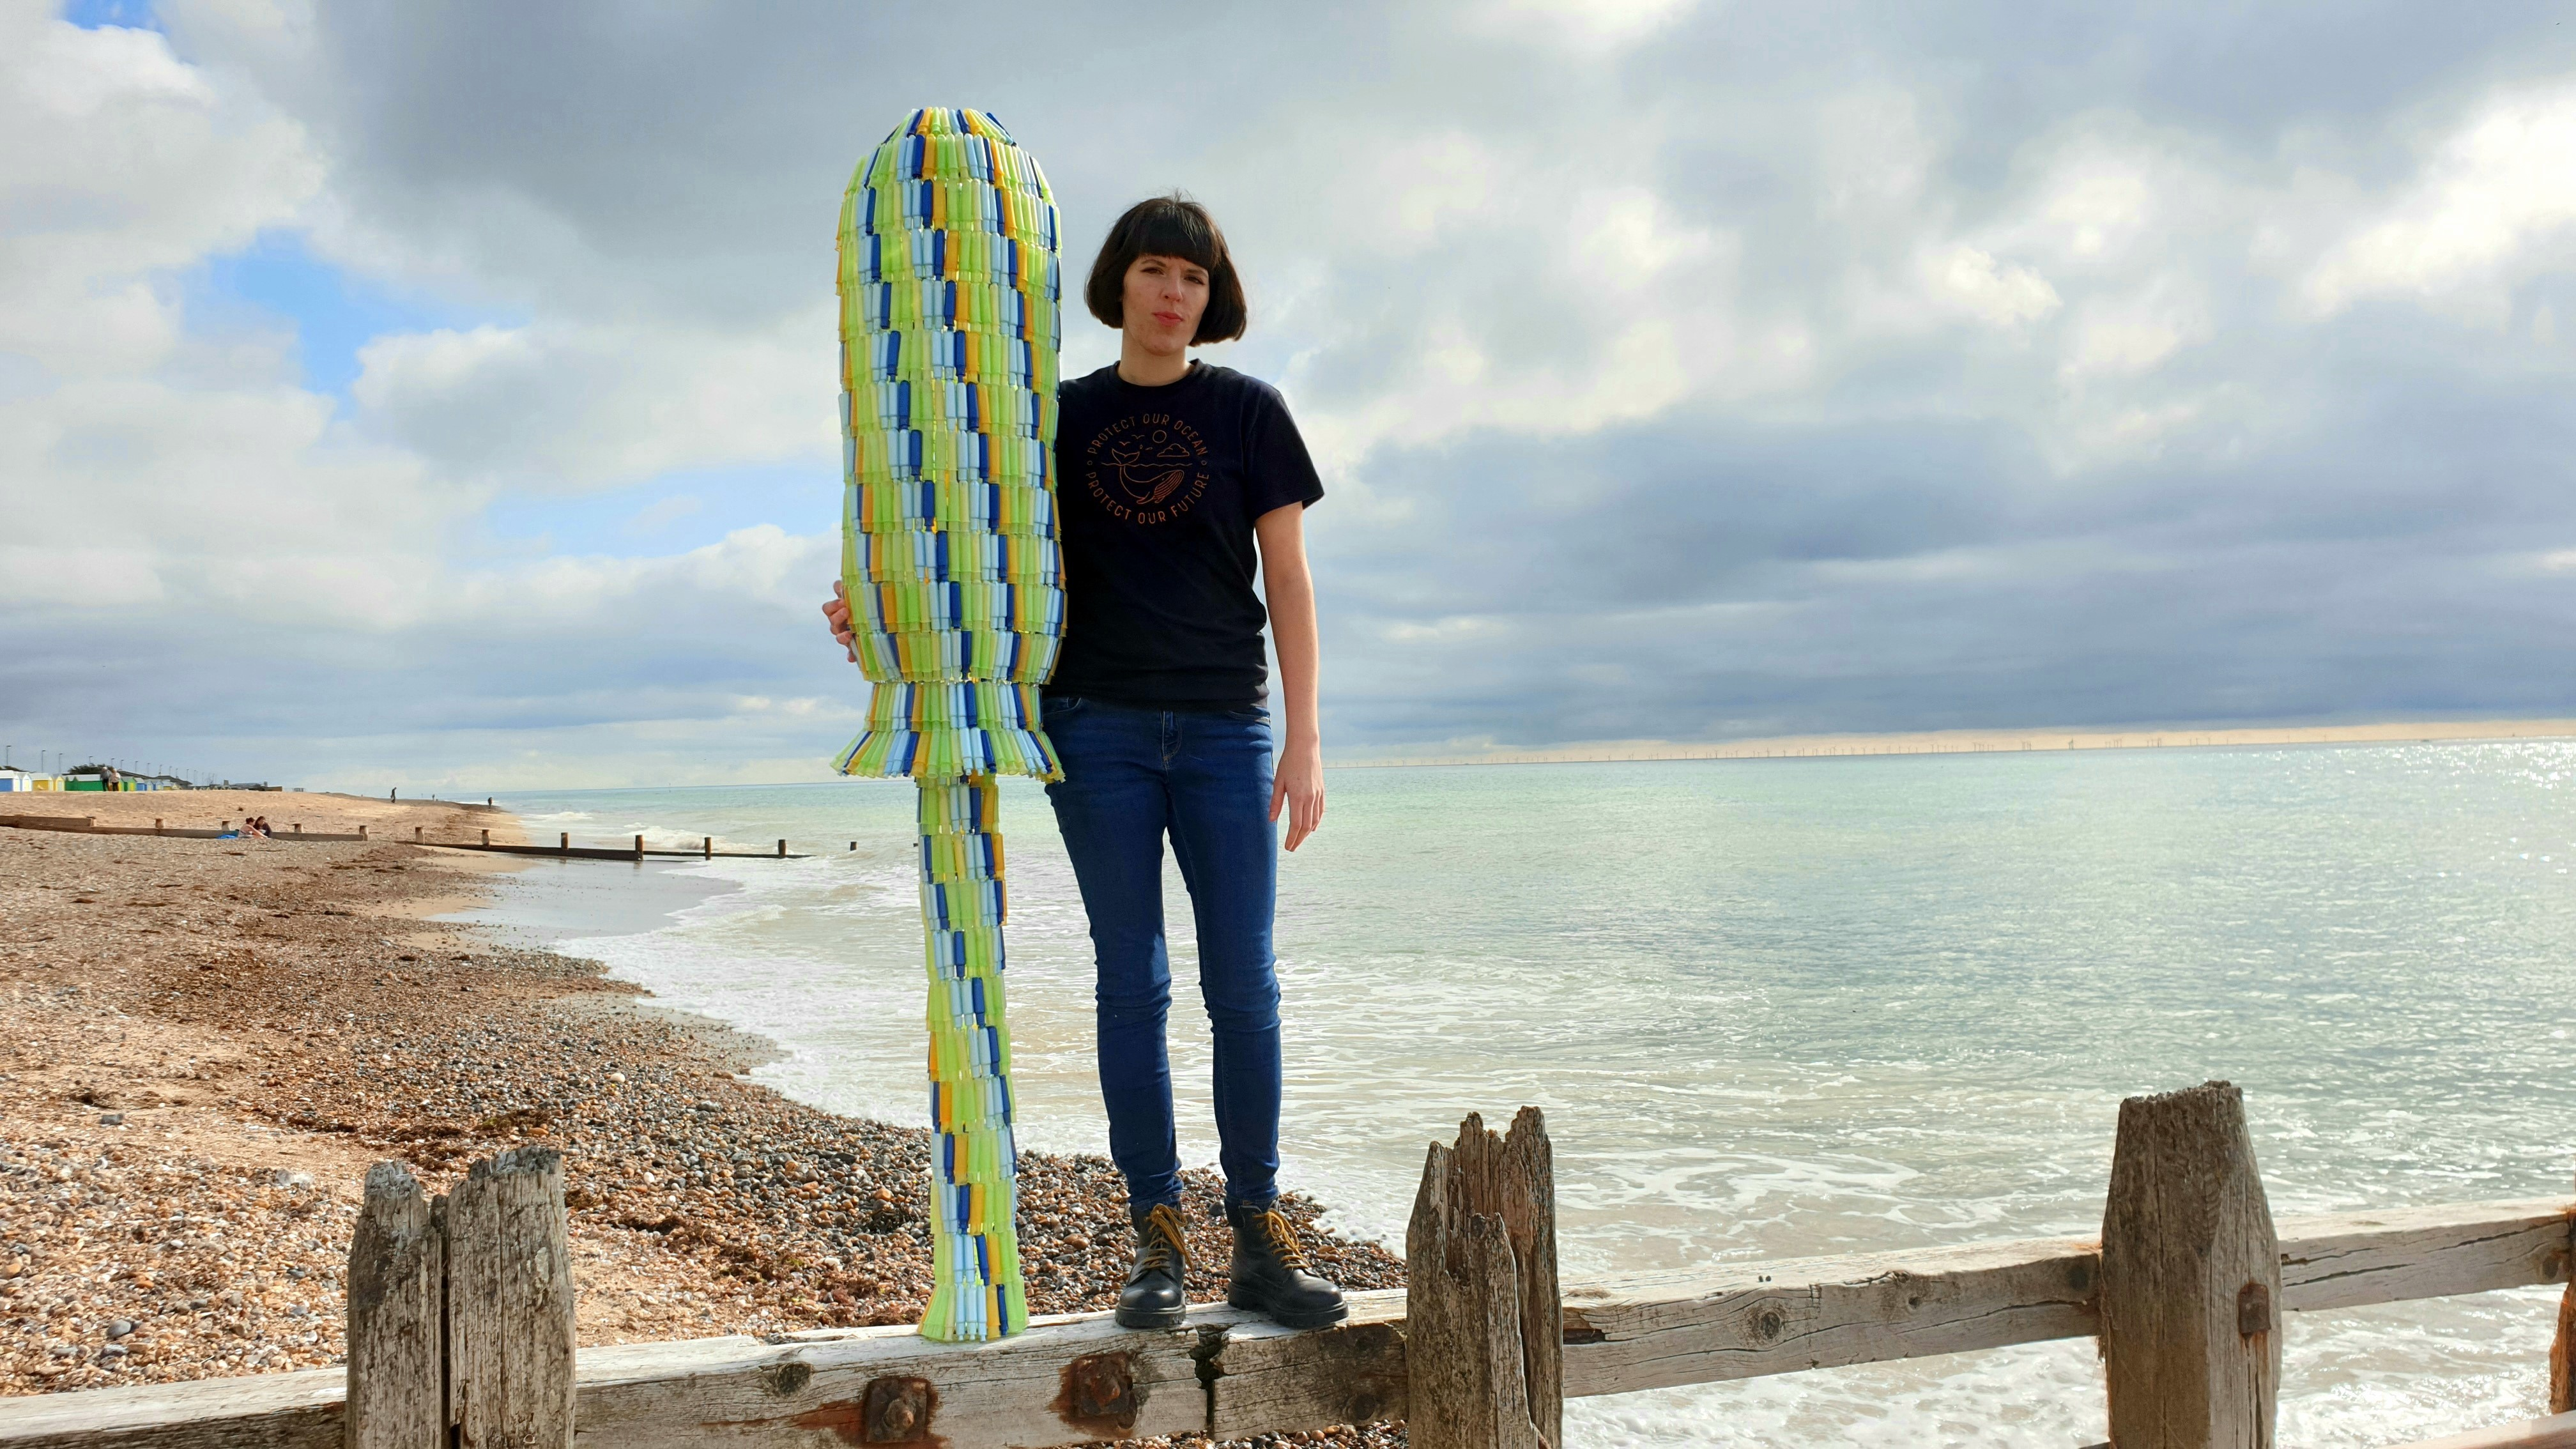 Ella Daish with a giant tampon applicator made from discarded plastic applicators found on British beaches